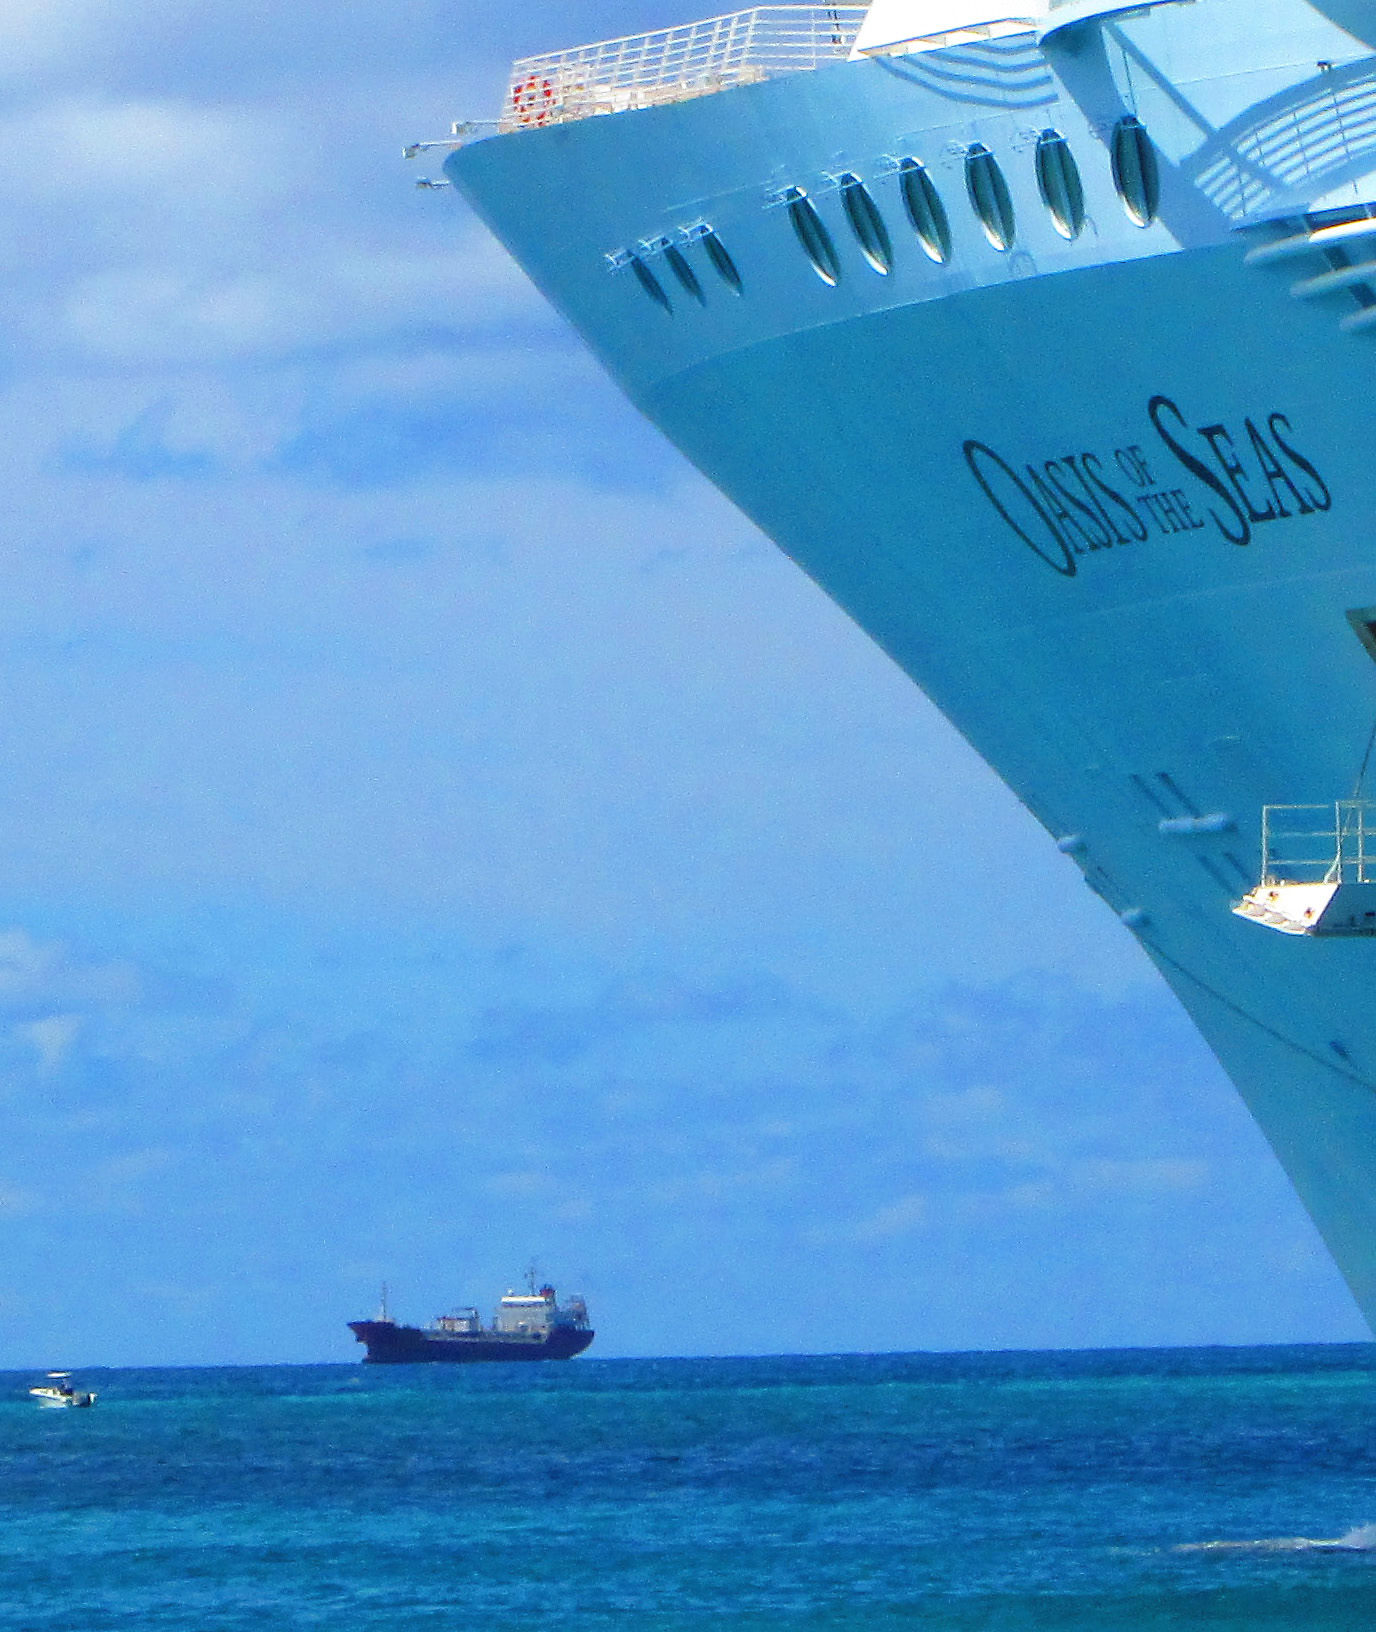 Container Ship Crossing The Bow Of The Oasis Of The Seas